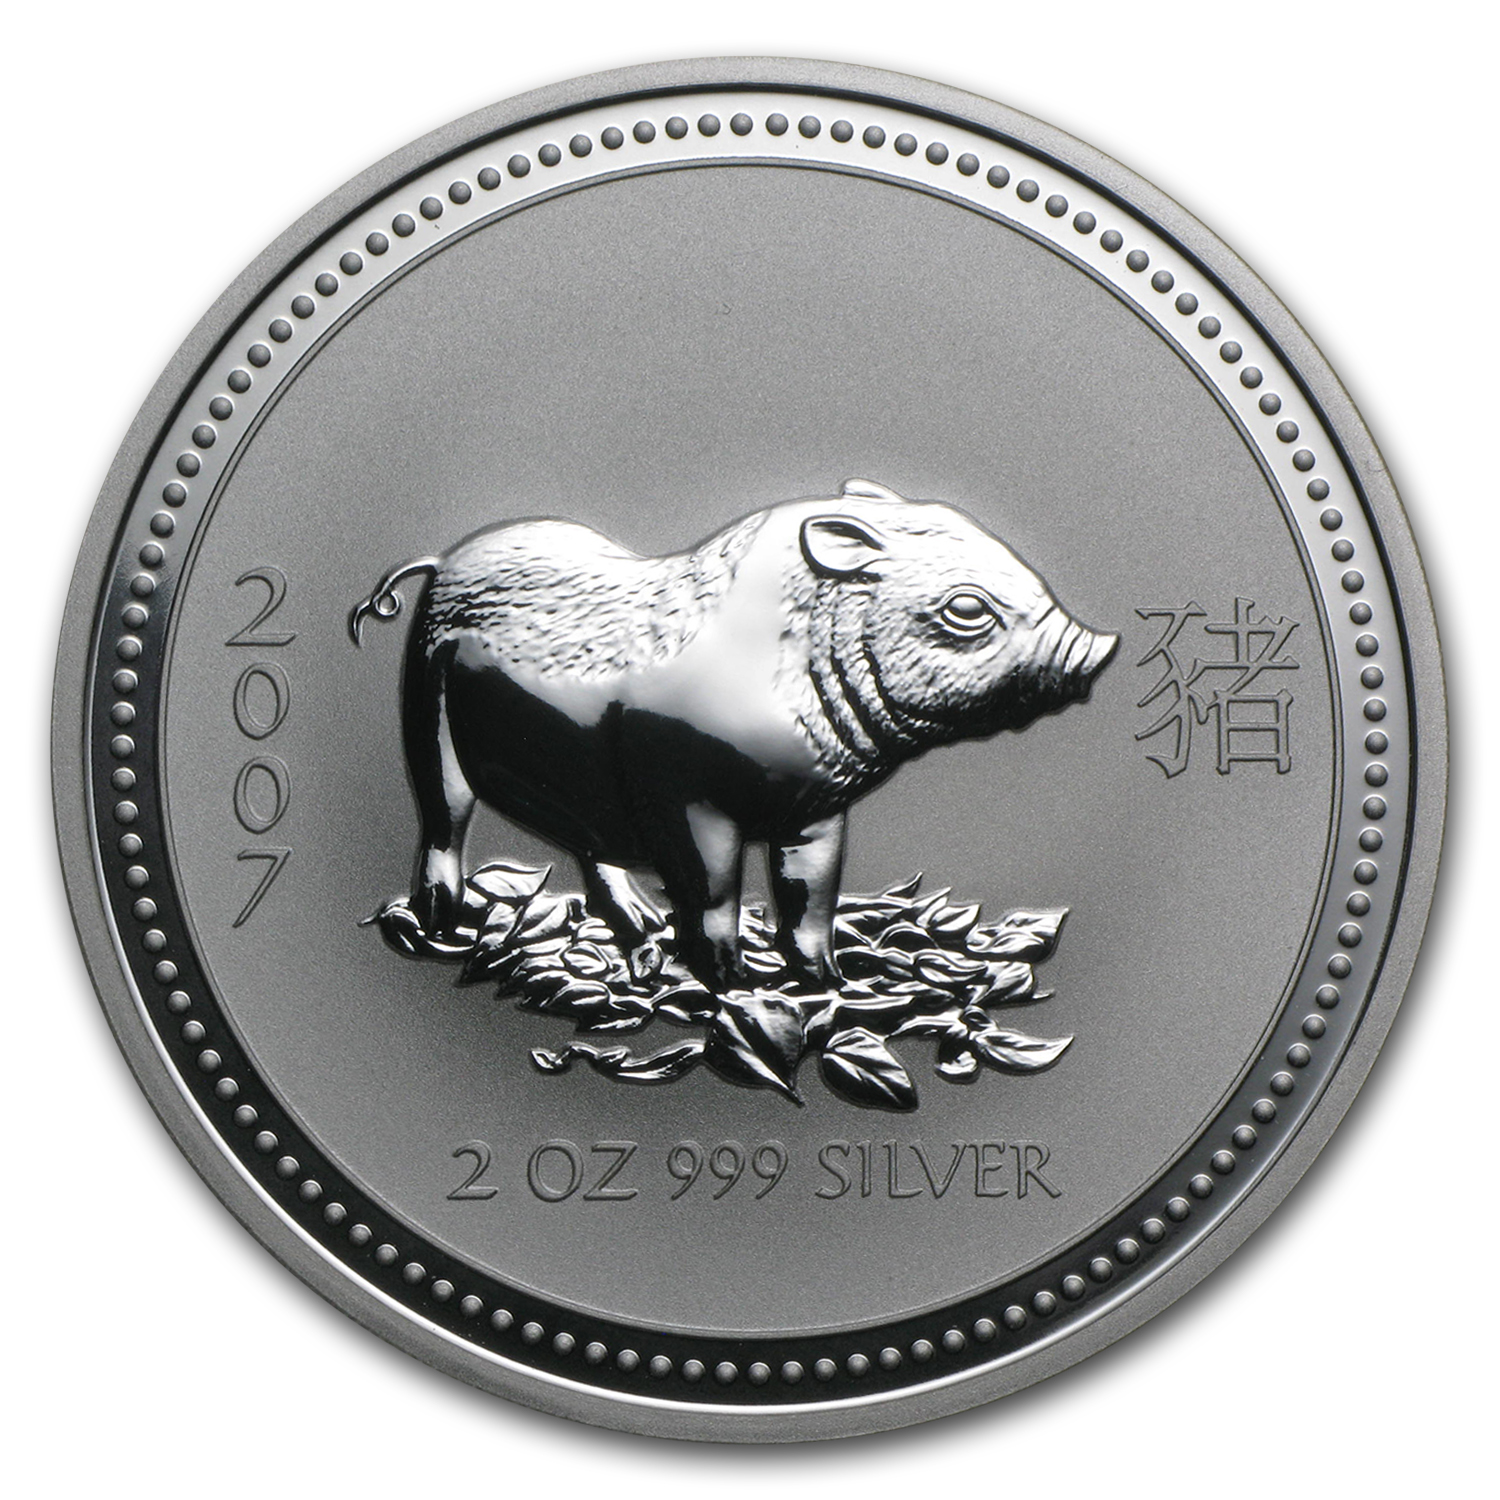 2007 2 oz Silver Lunar Year of the Pig (Series I)